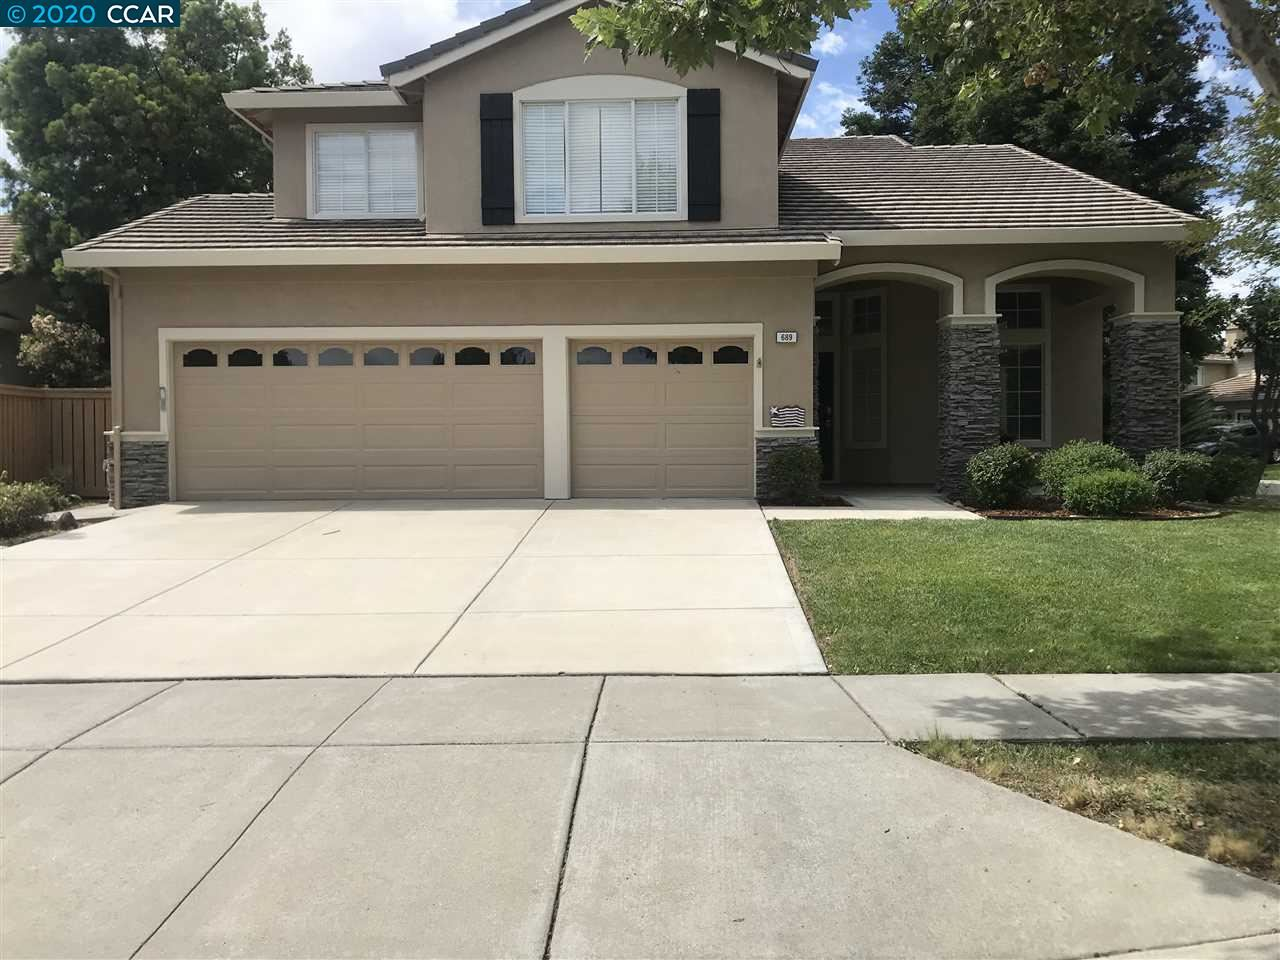 Photo of 689 Apple Hill Dr, BRENTWOOD, CA 94513 (MLS # 40906639)